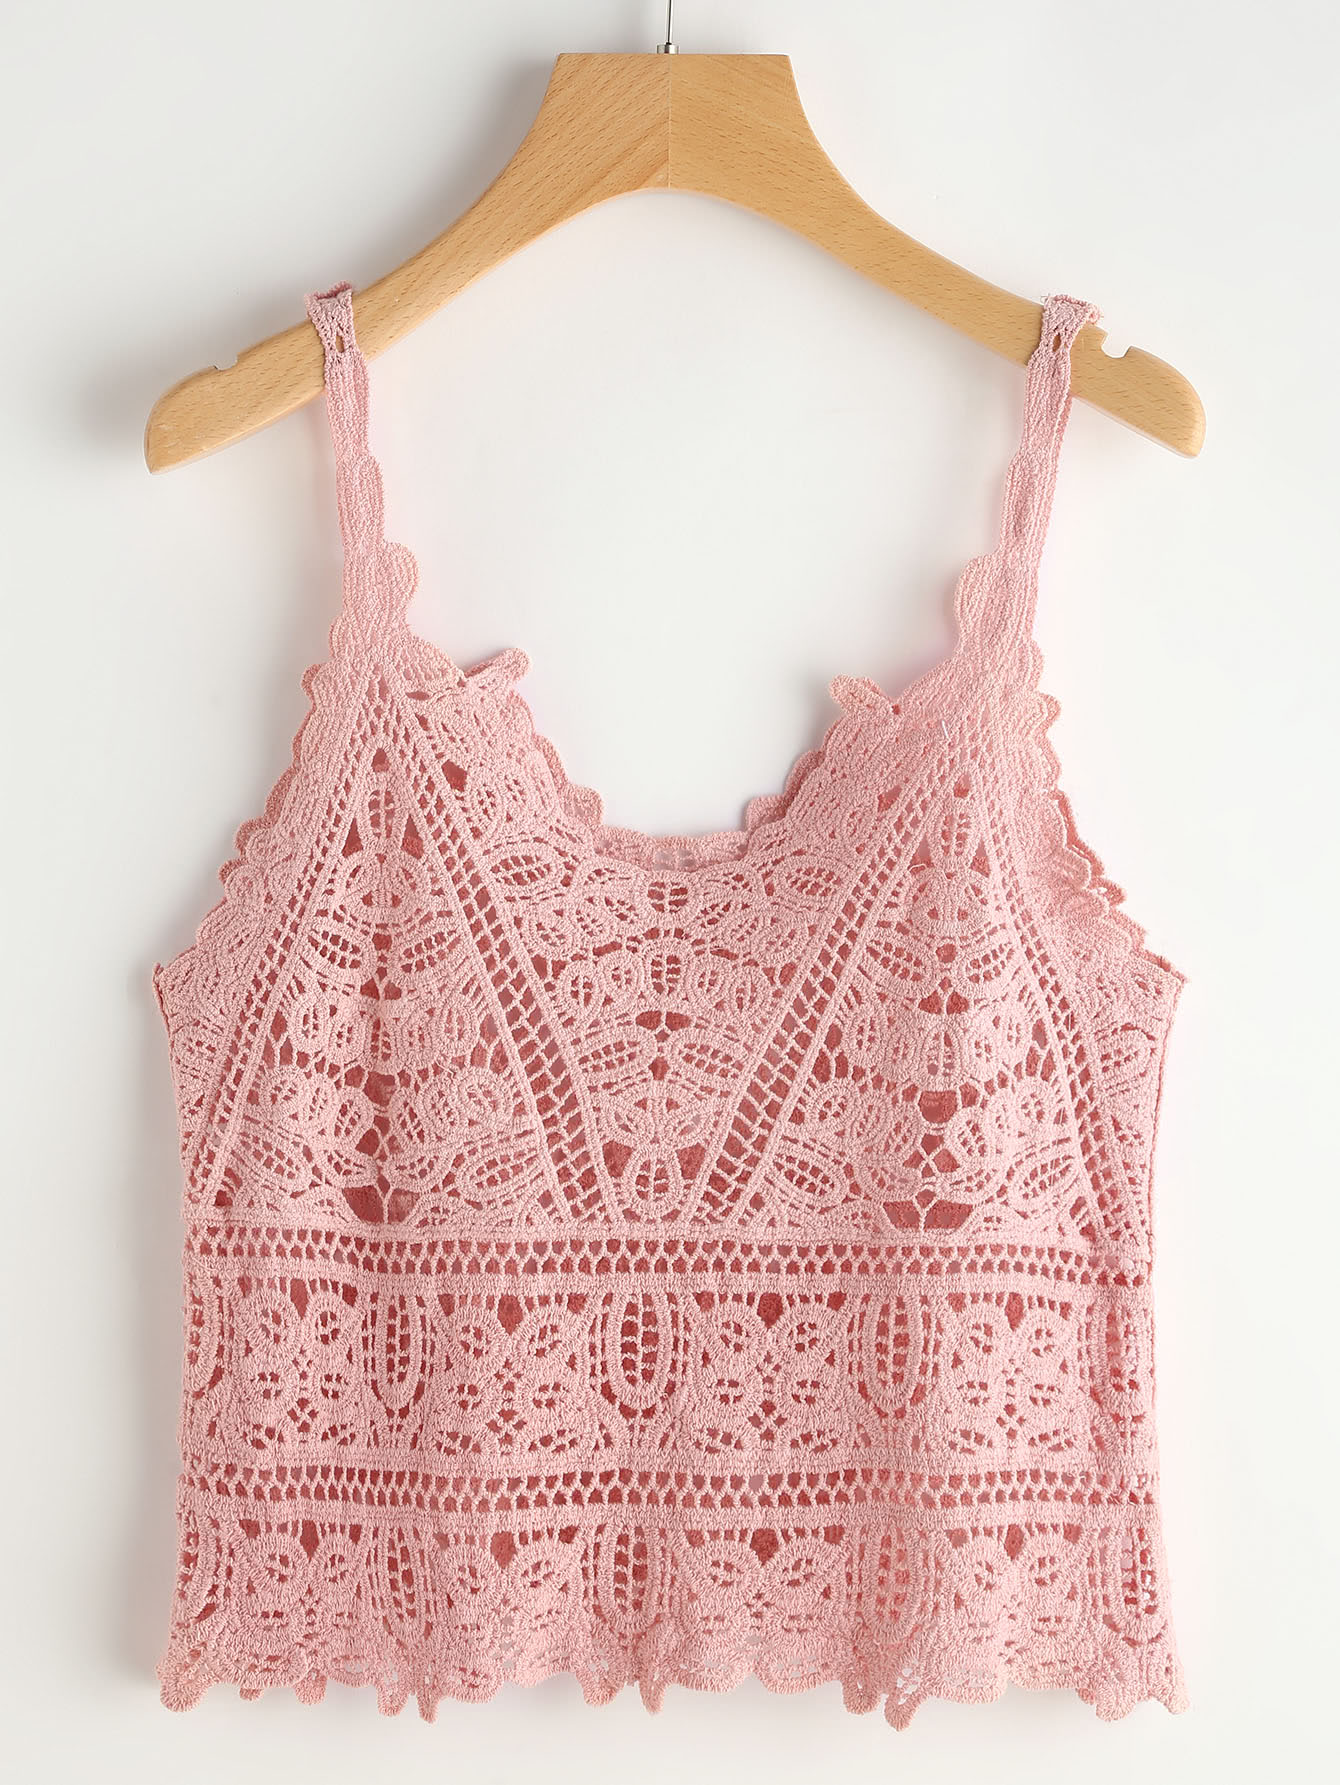 crochet lace cami top - knittting crochet